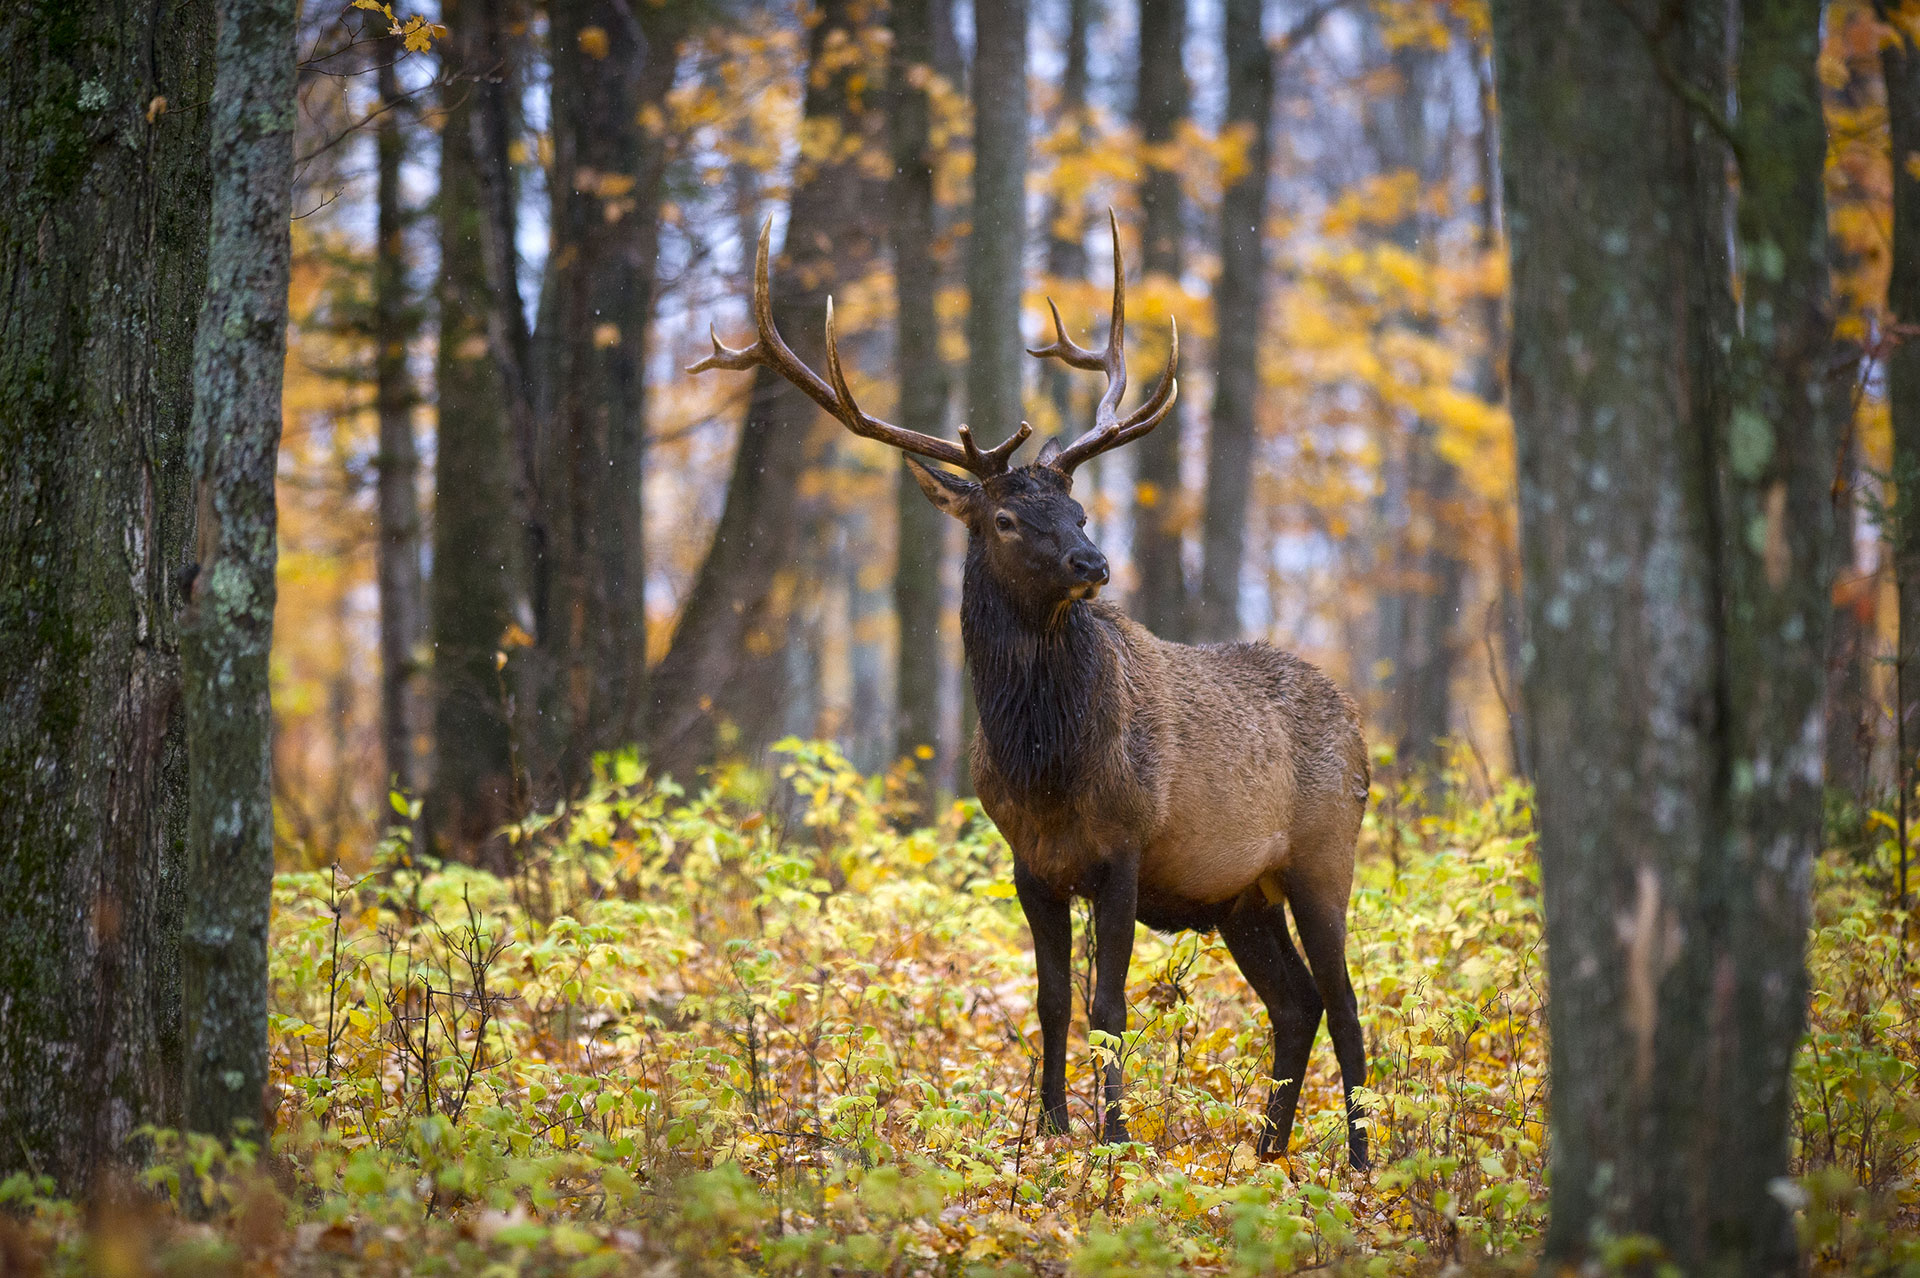 Elk benefit from the Wildlife Habitat Grant through conserving their habitat